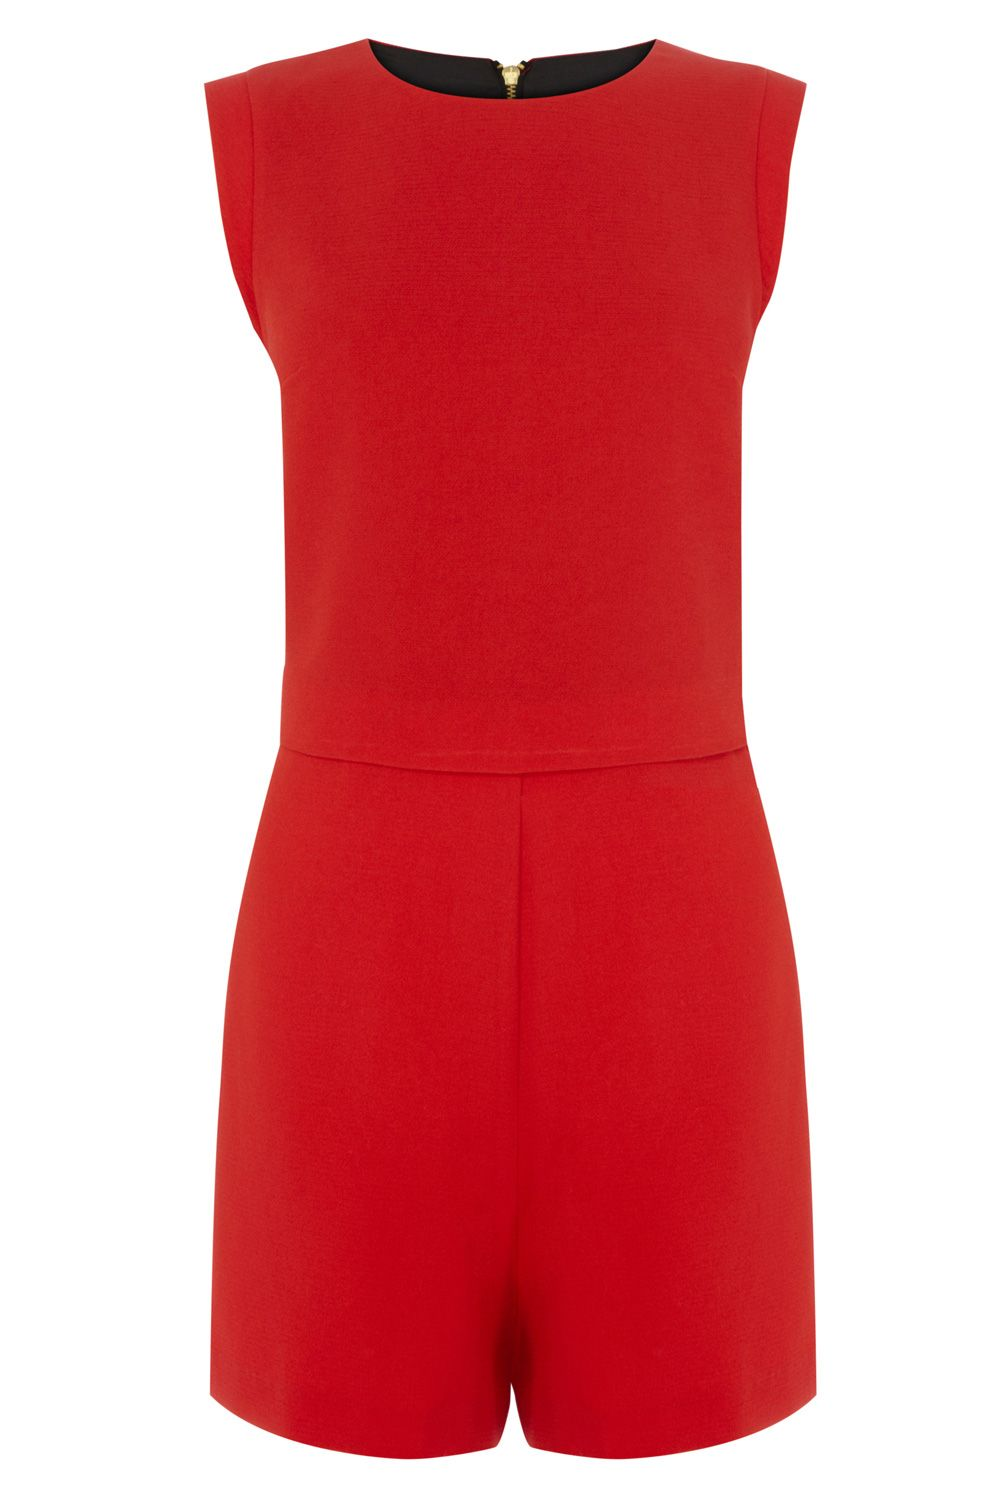 Lana crepe playsuit